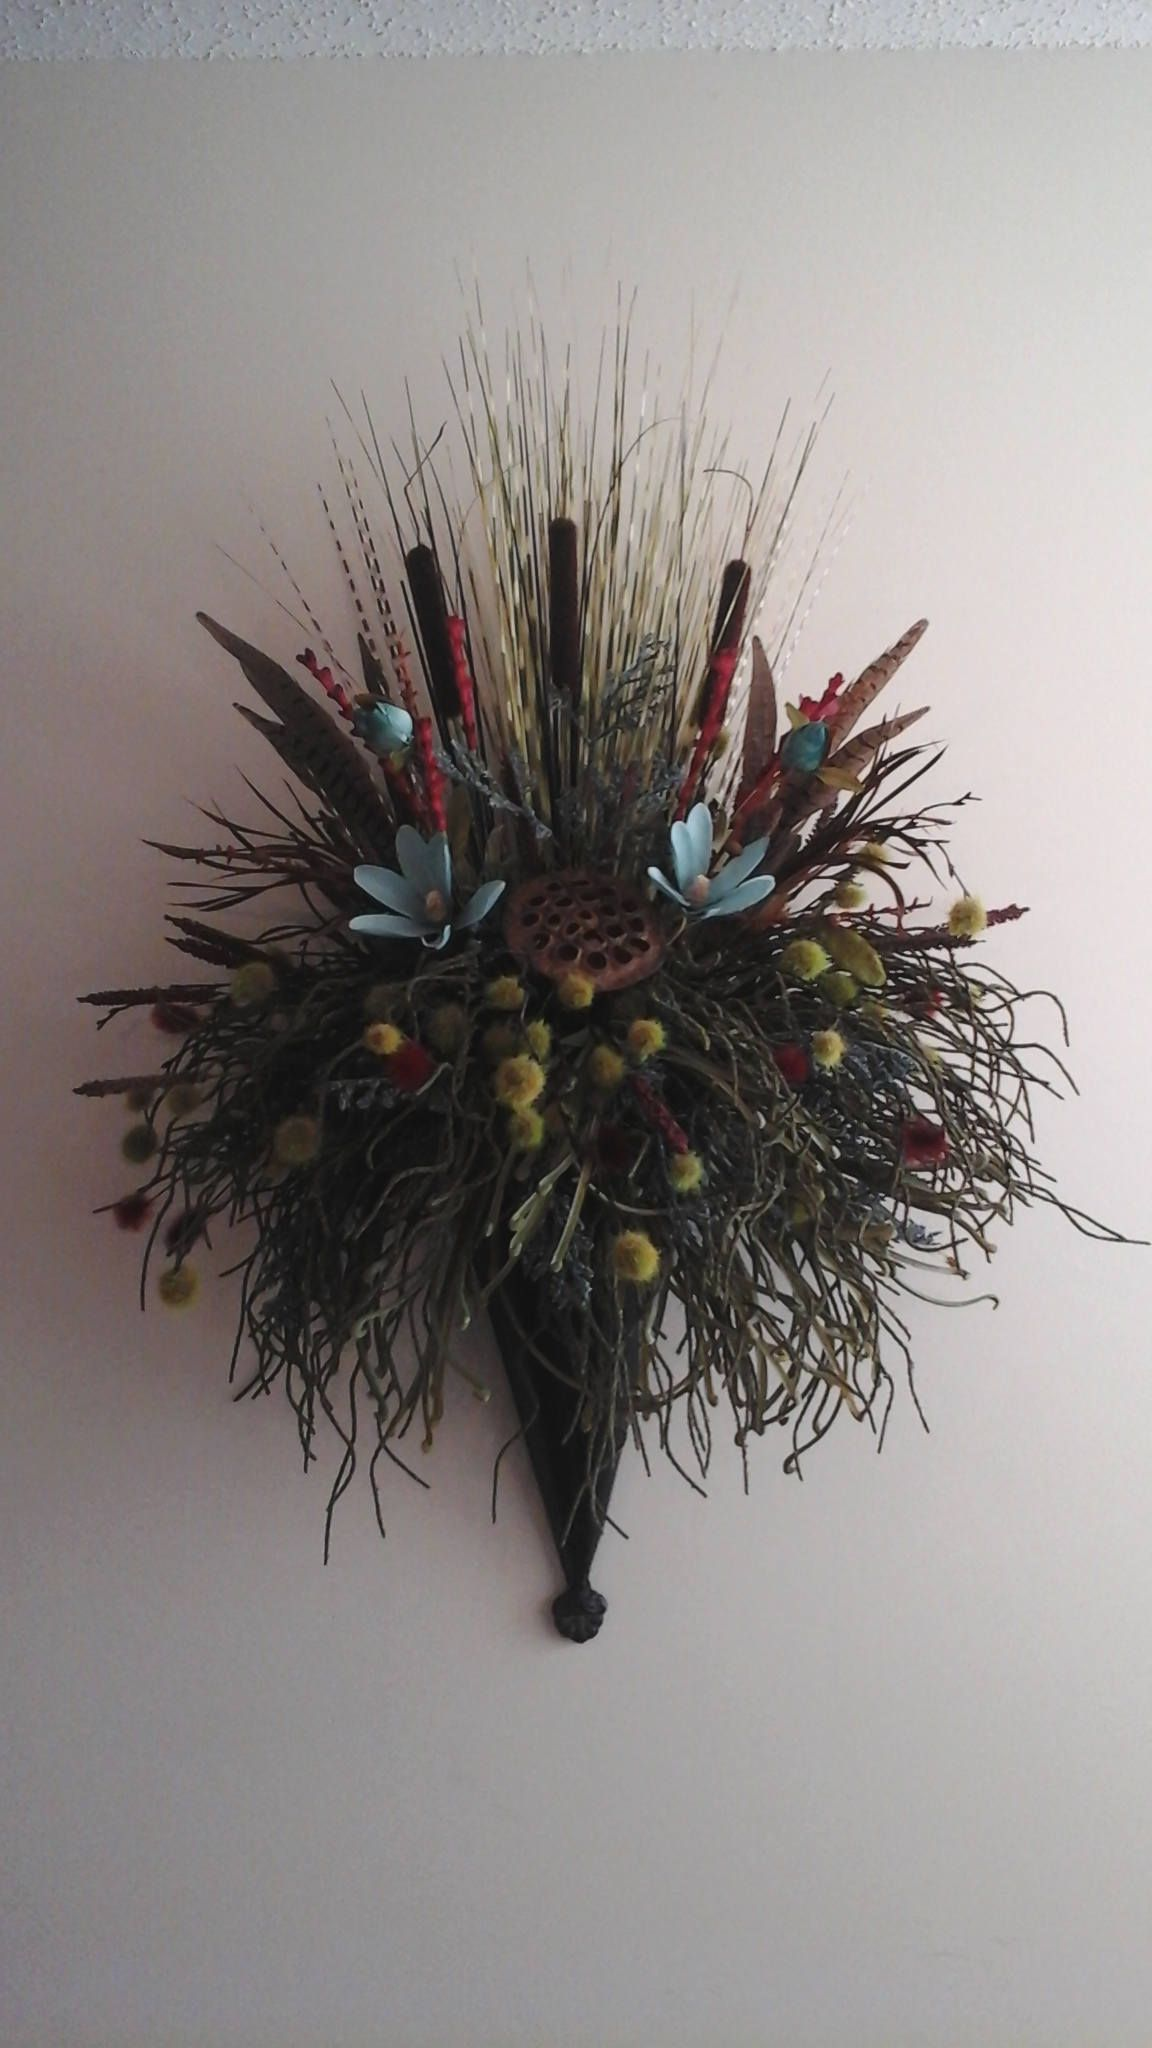 Floral Wall Sconce, Wall Planter, Wall Pocket, Floral ... on Pocket Wall Sconce For Flowers id=44865